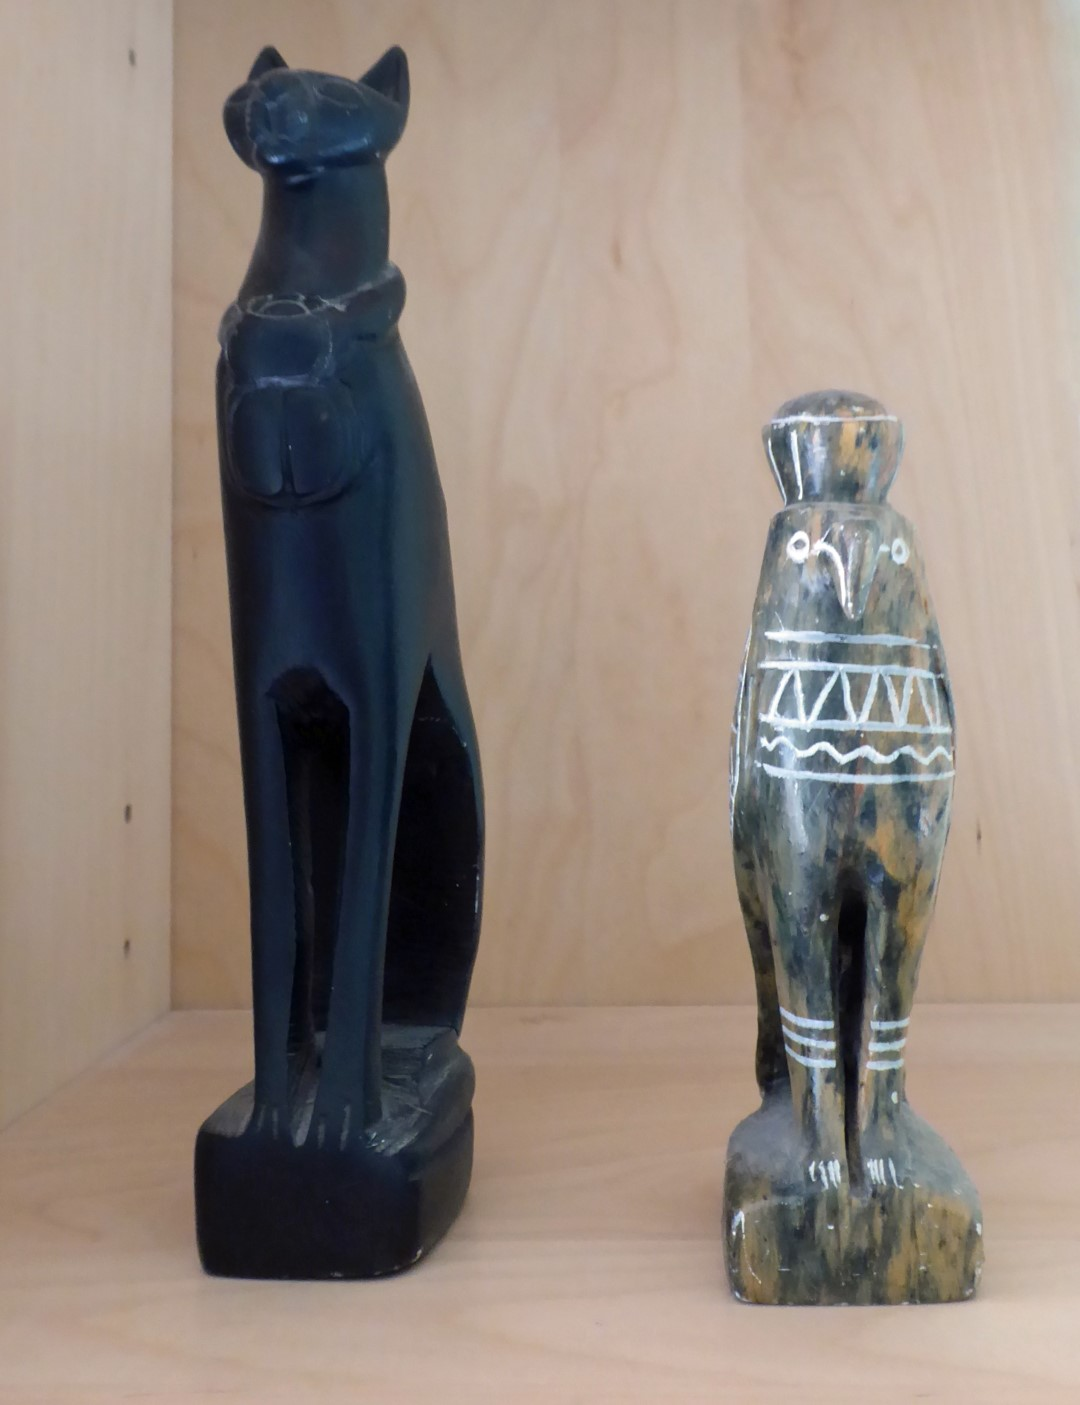 Stone carvings of Egyptian gods